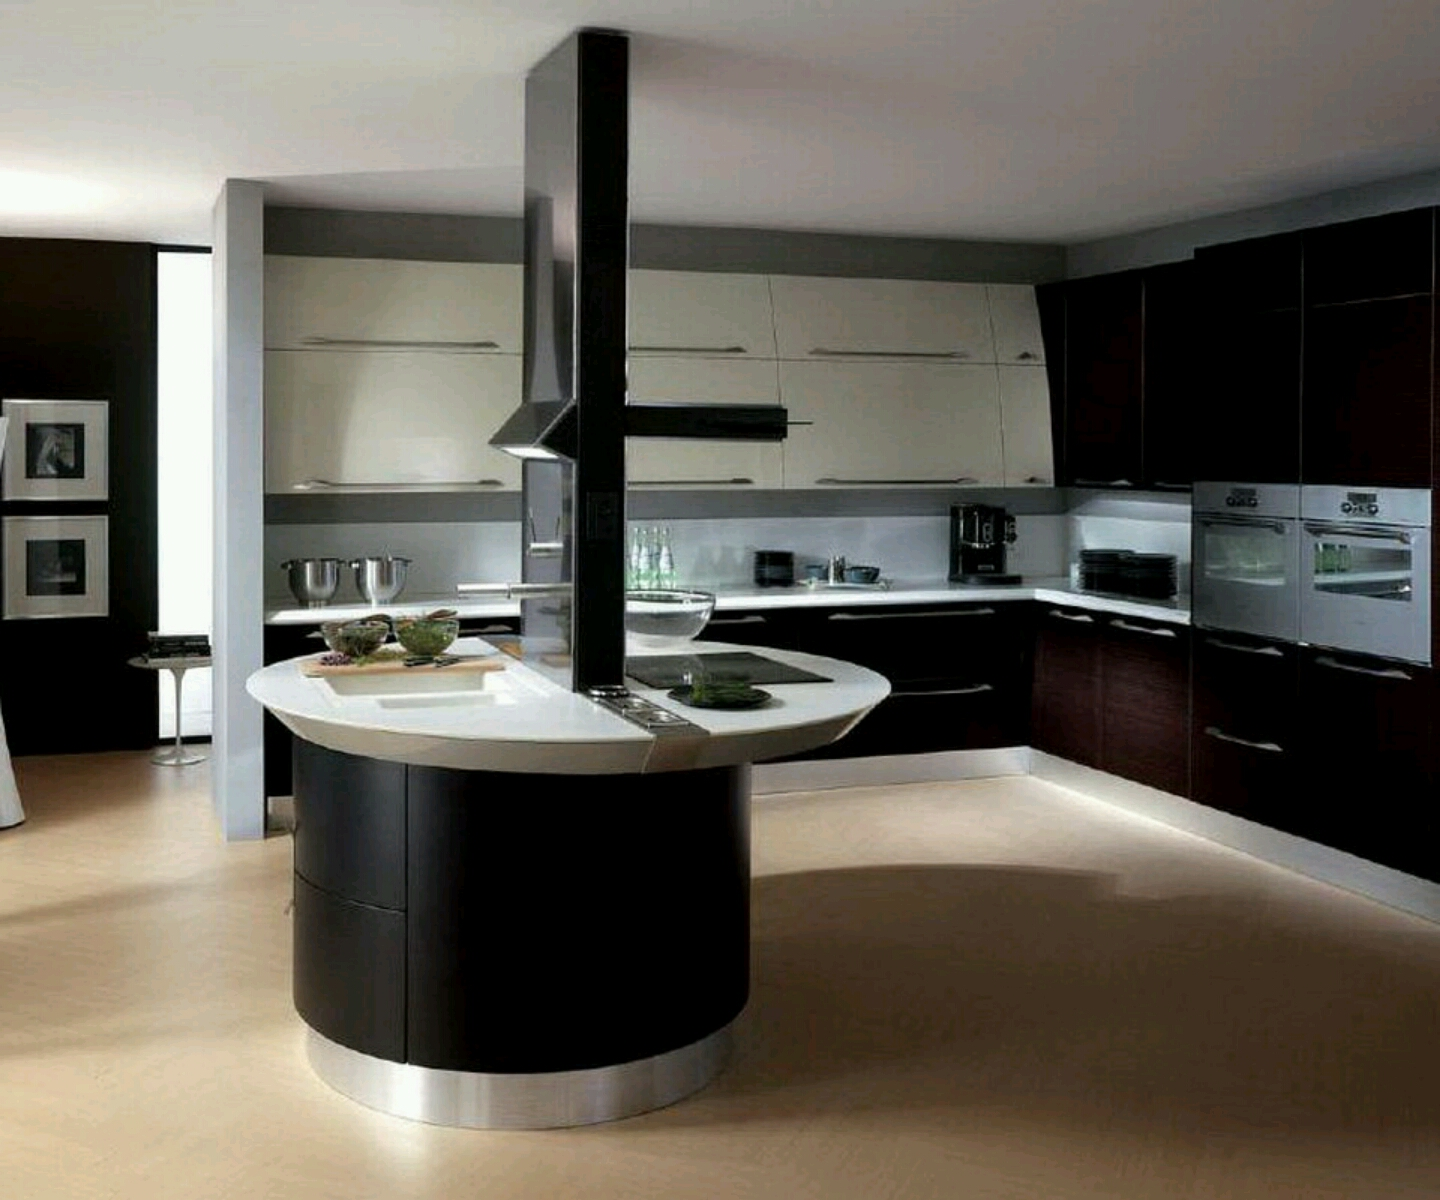 Modern kitchen cabinet design for Modern kitchen cabinets design ideas